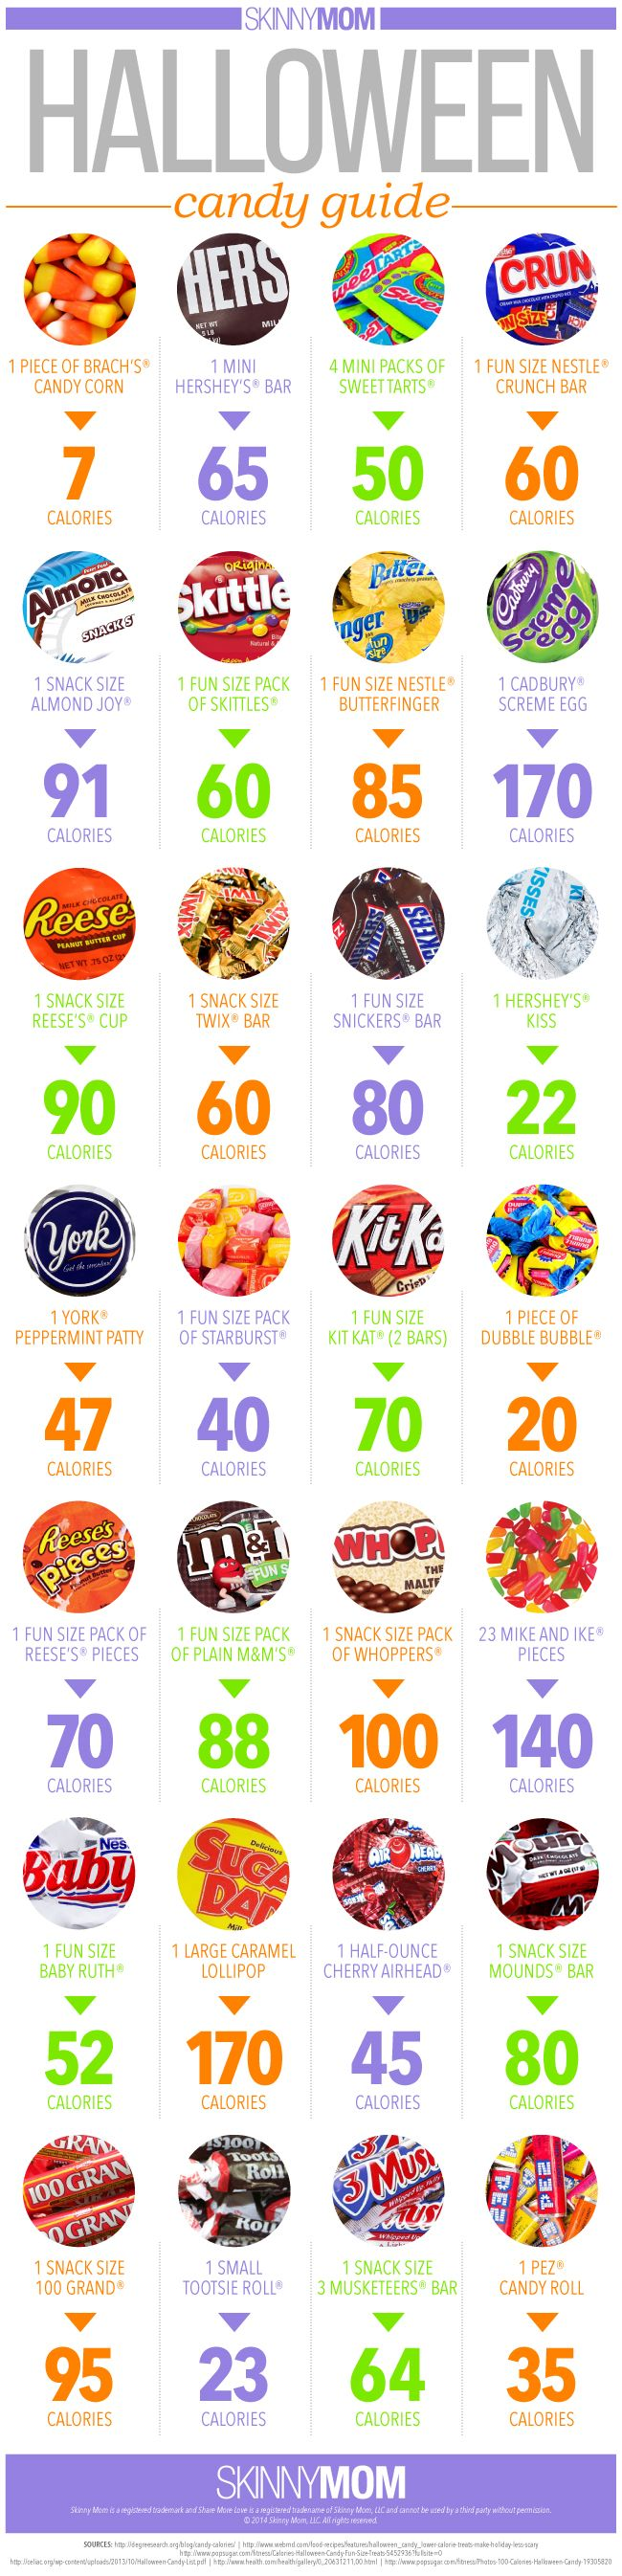 Skinny Mom's Guide to Halloween Candy